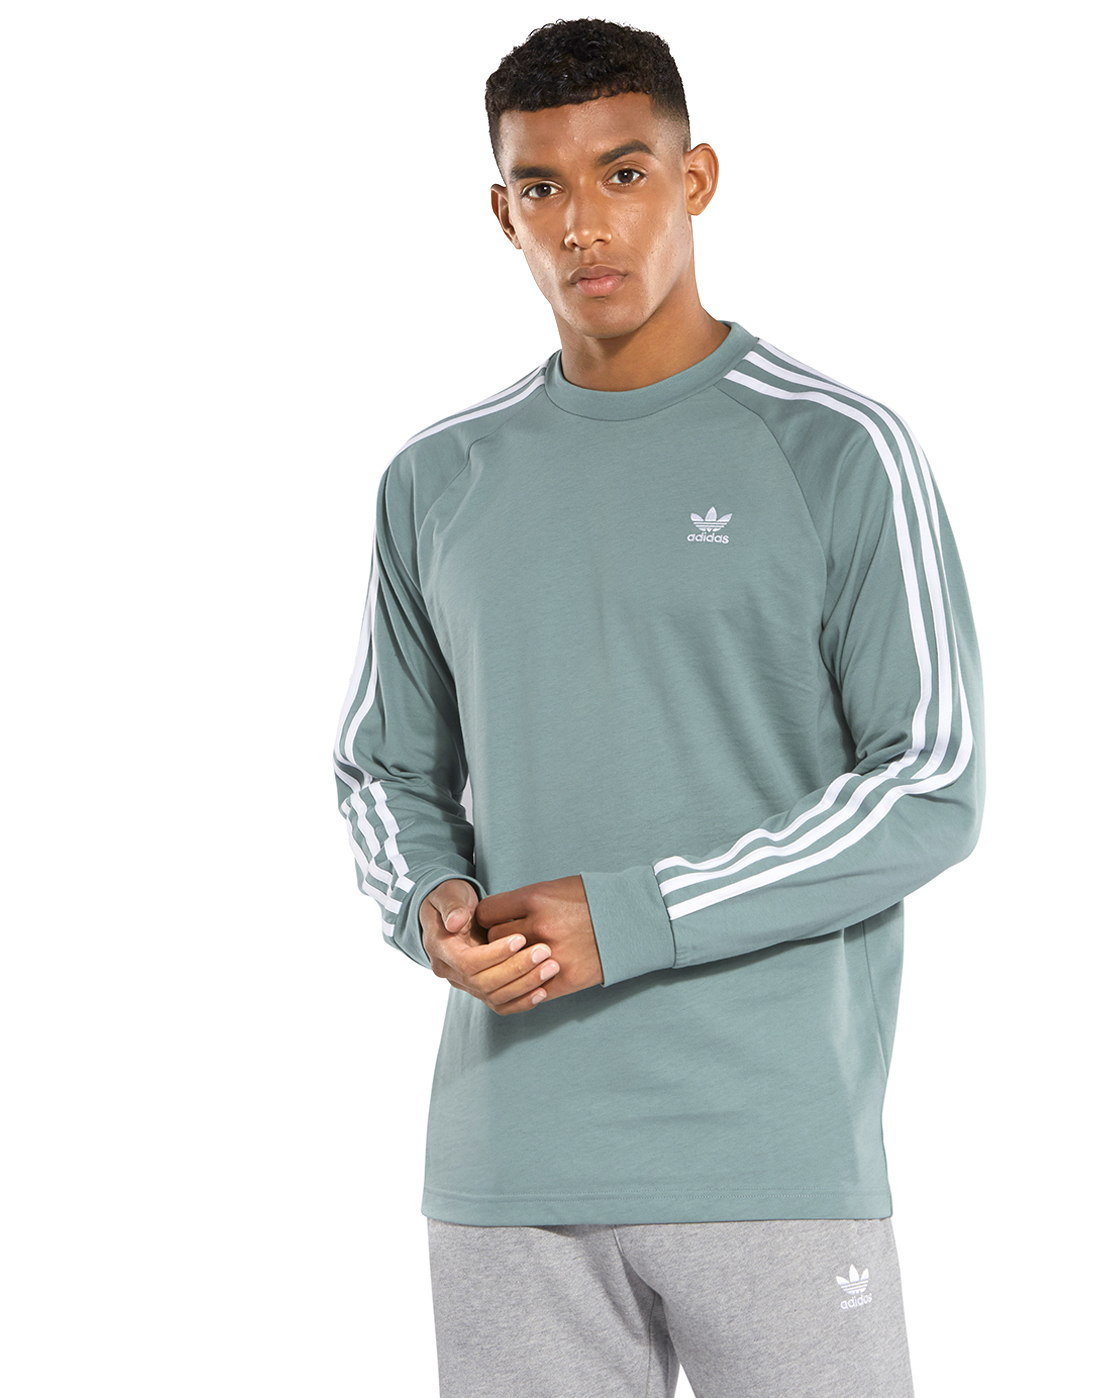 fd8f6a99bc Men's Green Long Sleeve adidas Originals T-Shirt | Life Style Sports